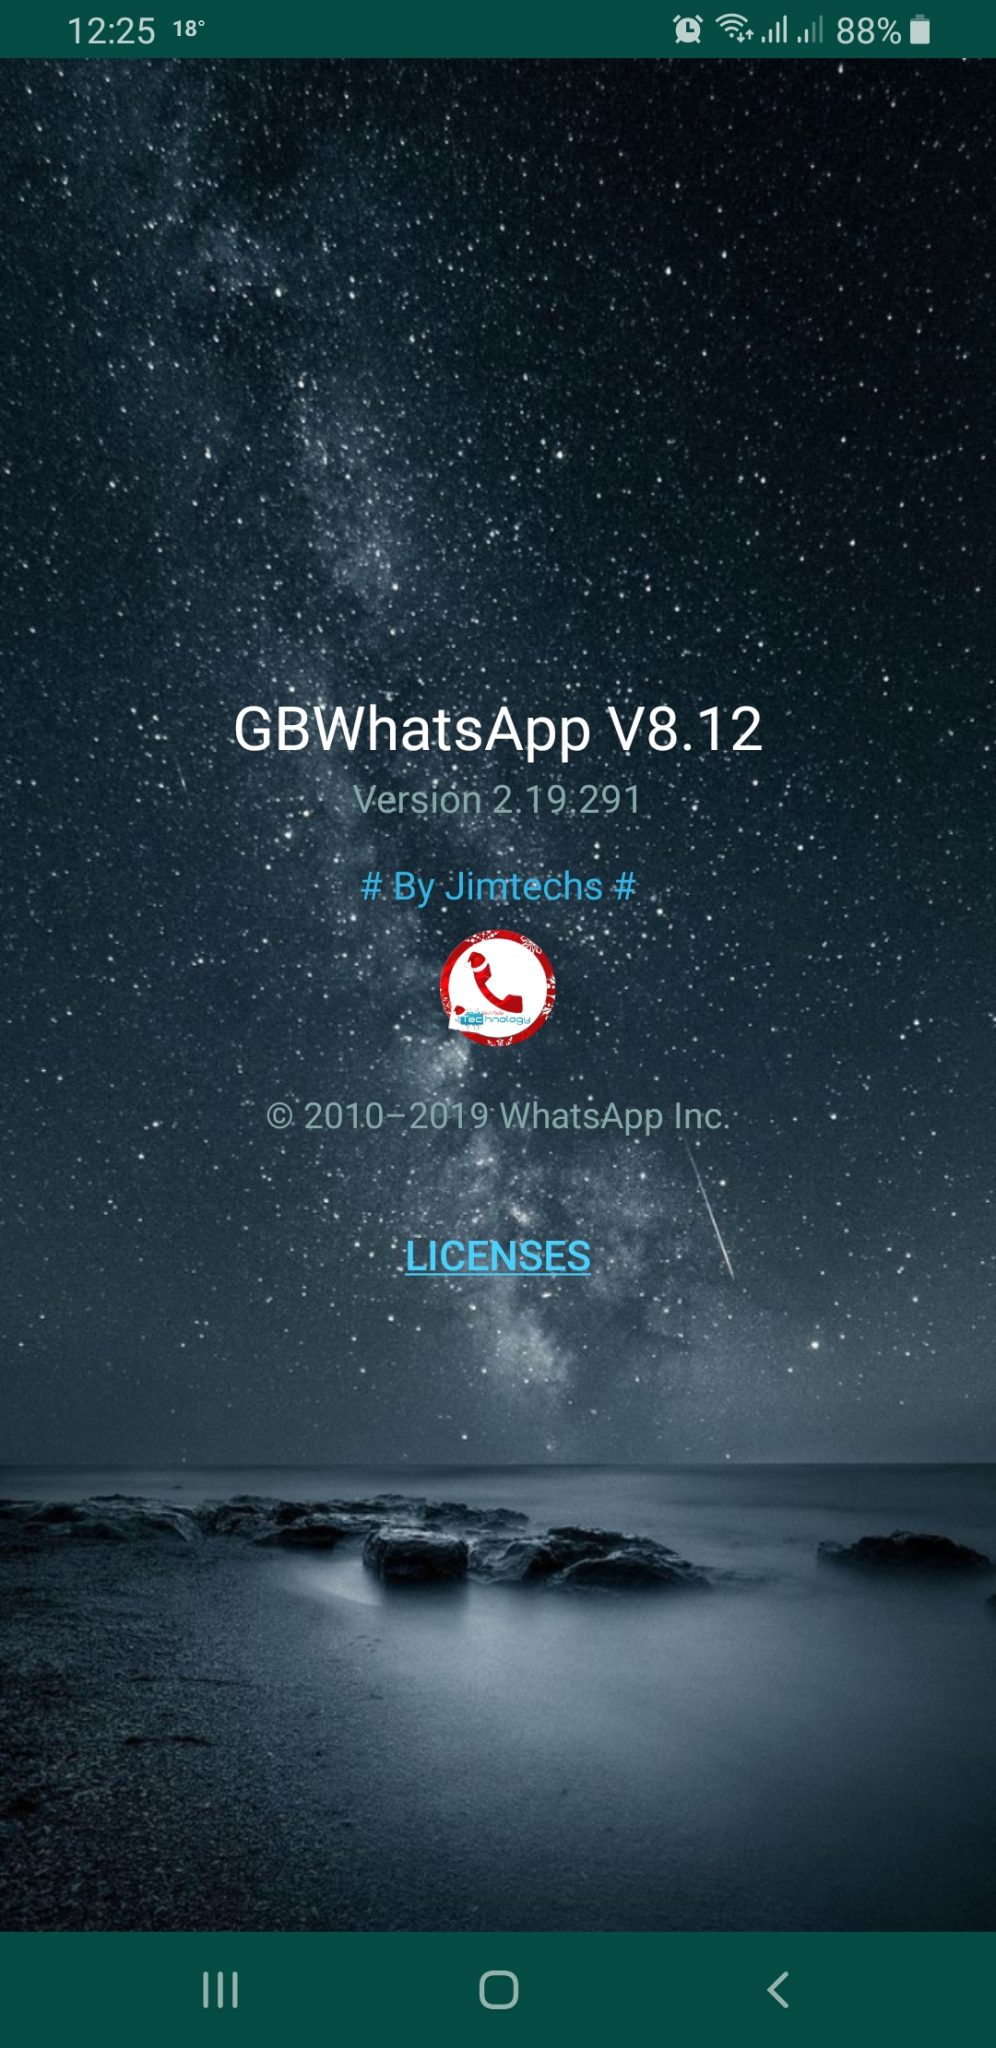 WhatsApp Plus JiMODs v8.12 Jimtechs Editions